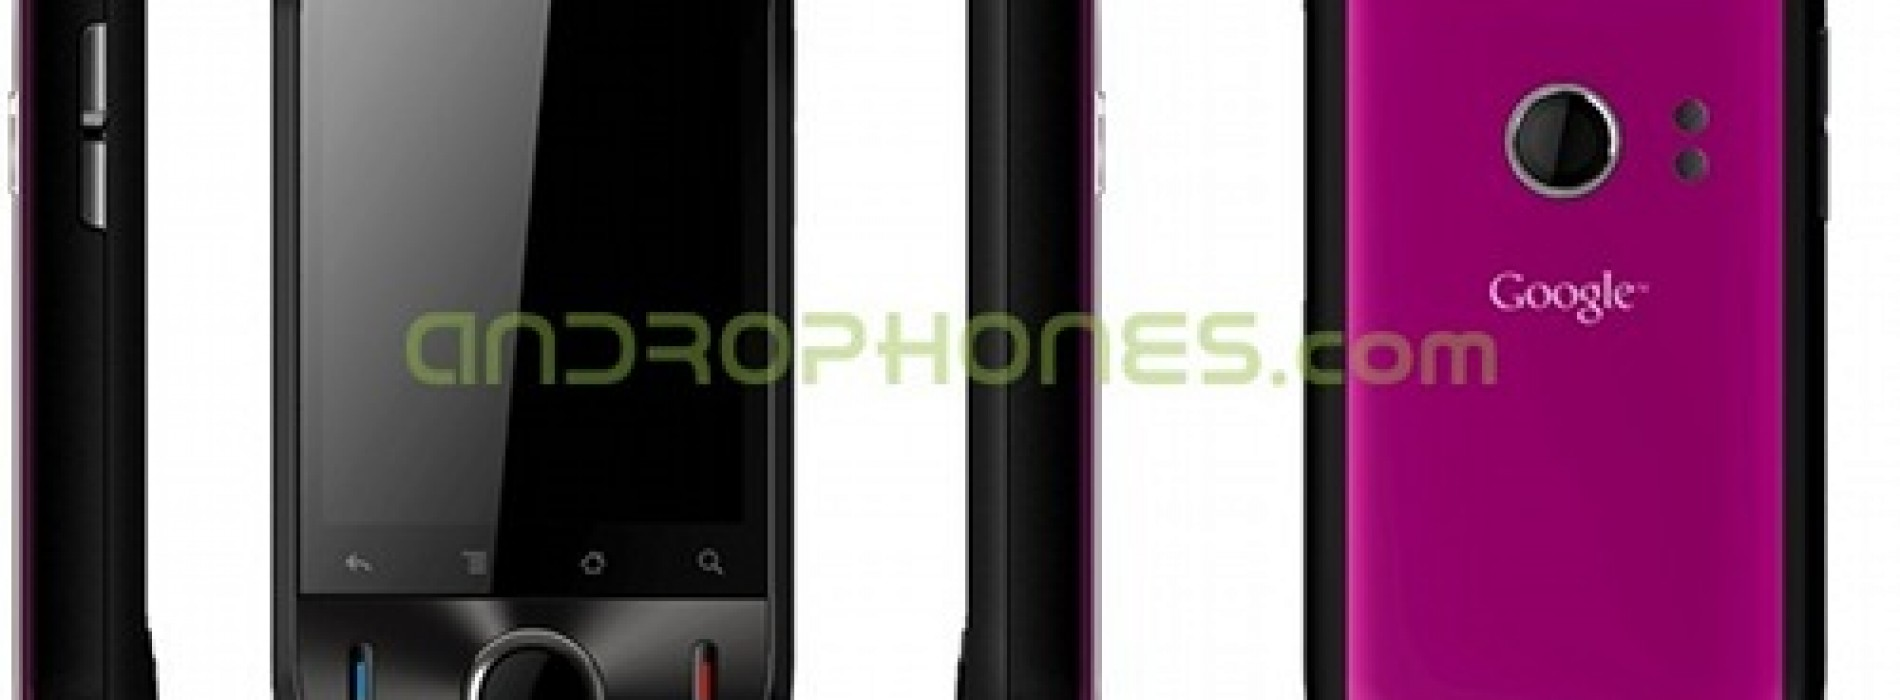 (UPDATED) Huawei Ideos passes FCC certification Launching with Android 2.2